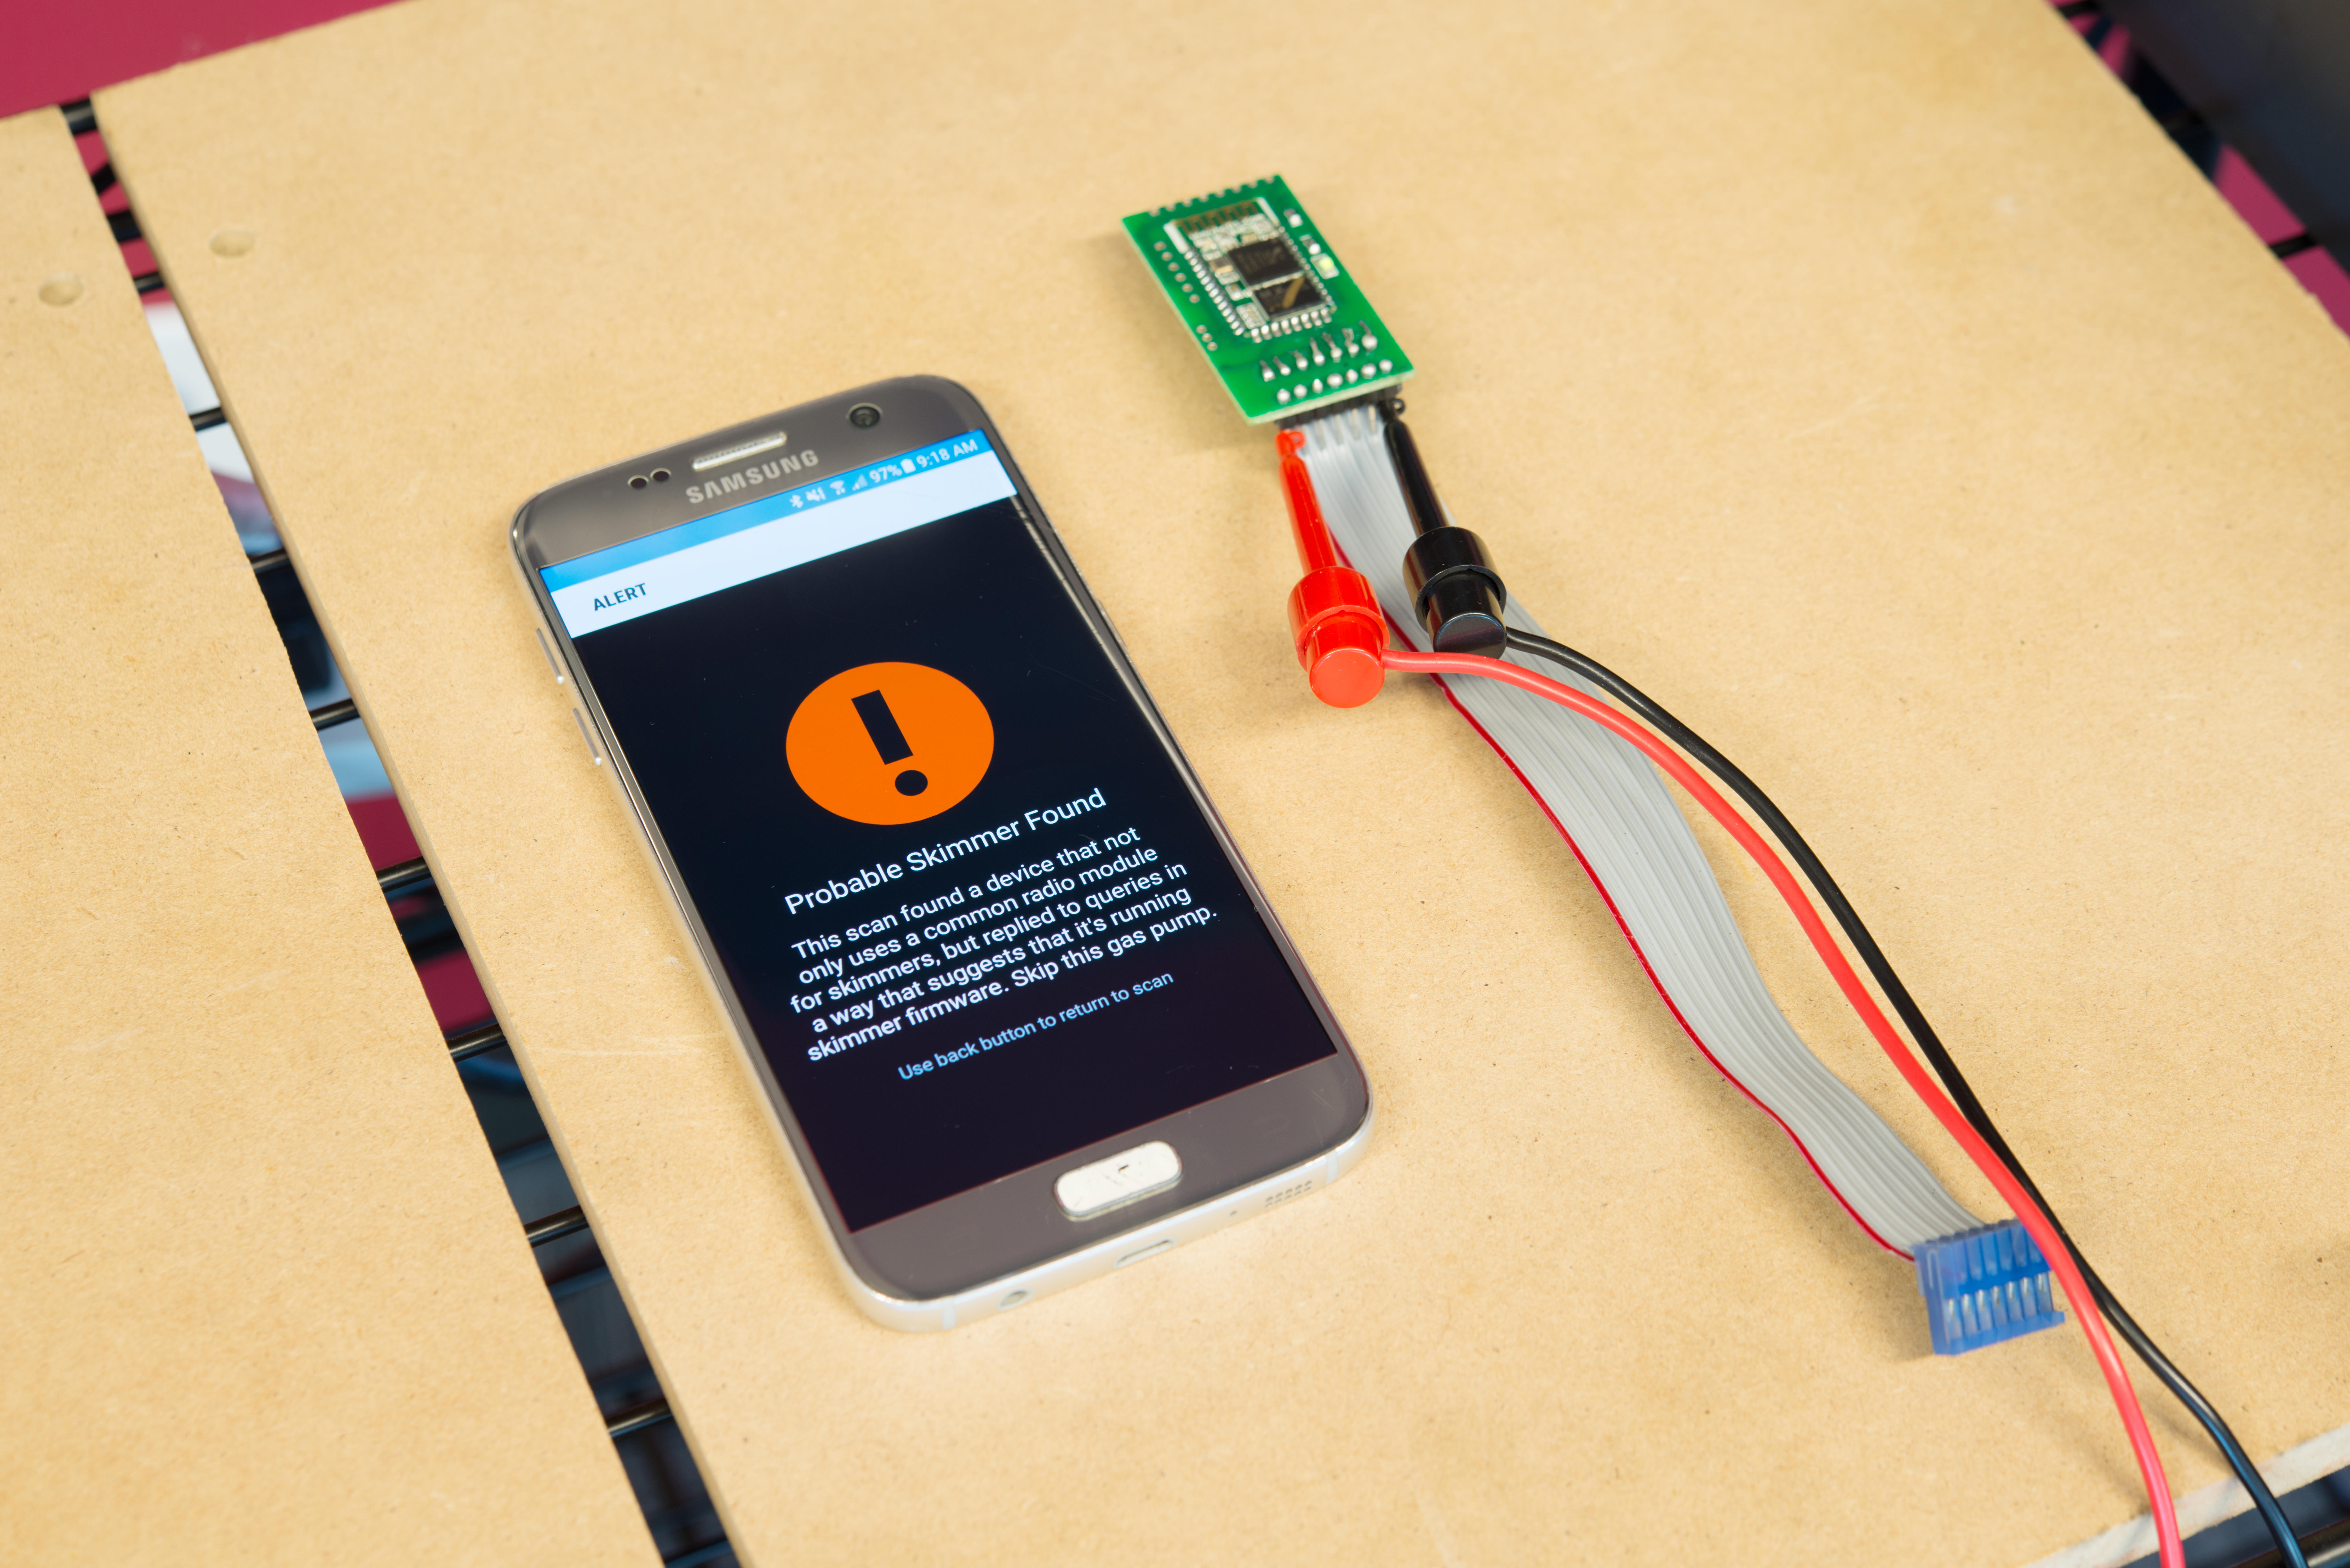 There's an app now that can help you find hidden skimmers.